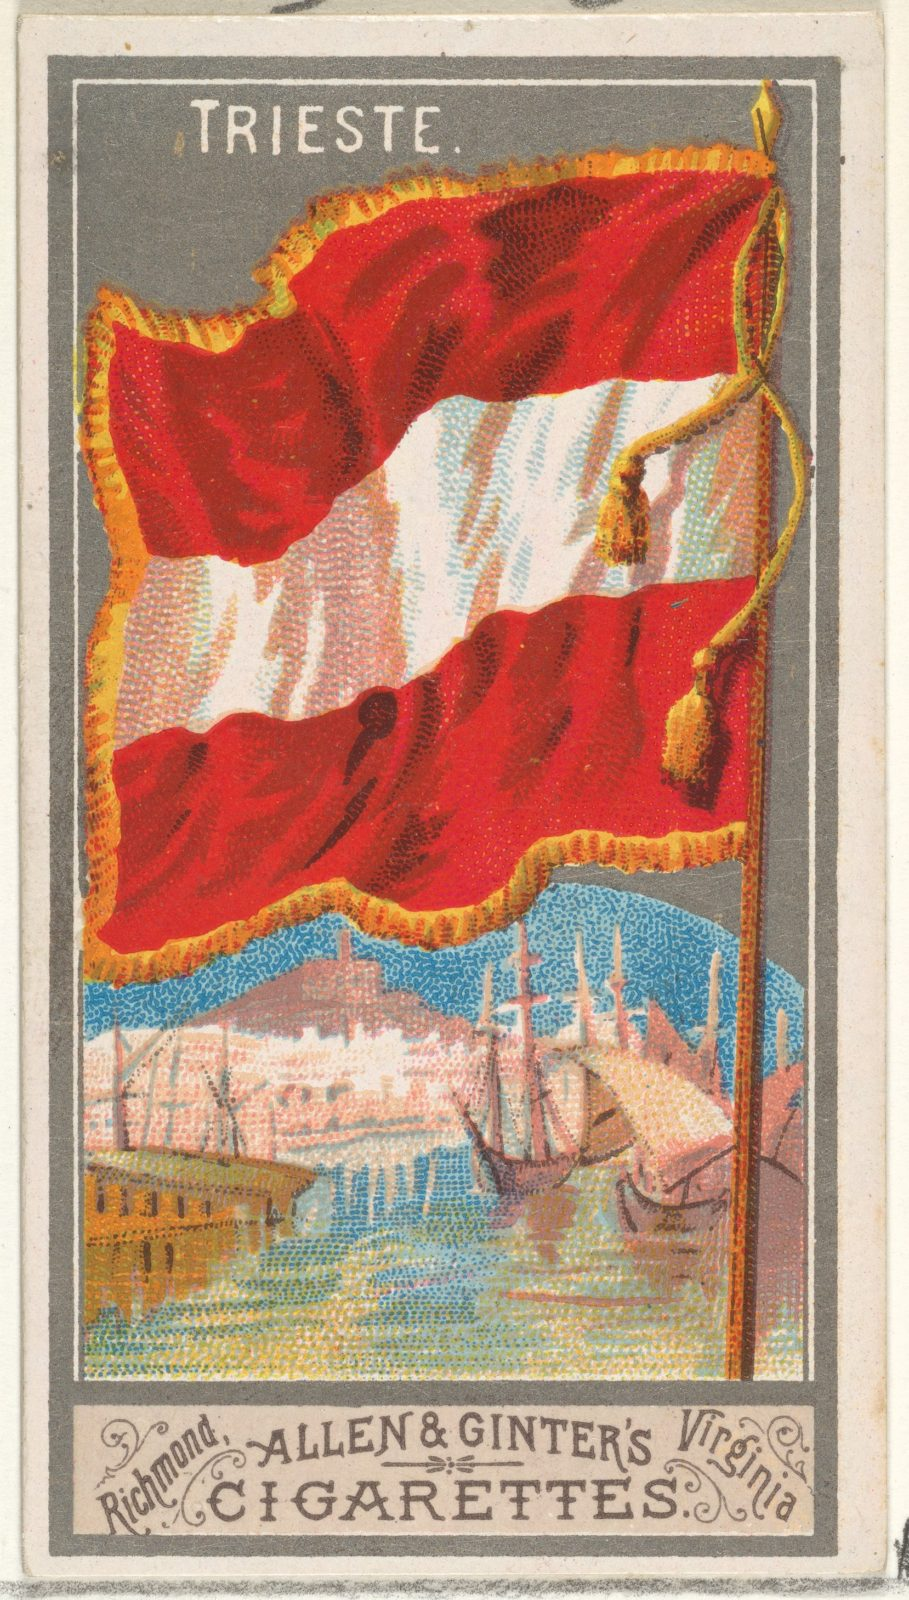 Trieste, from the City Flags series (N6) for Allen & Ginter Cigarettes Brands